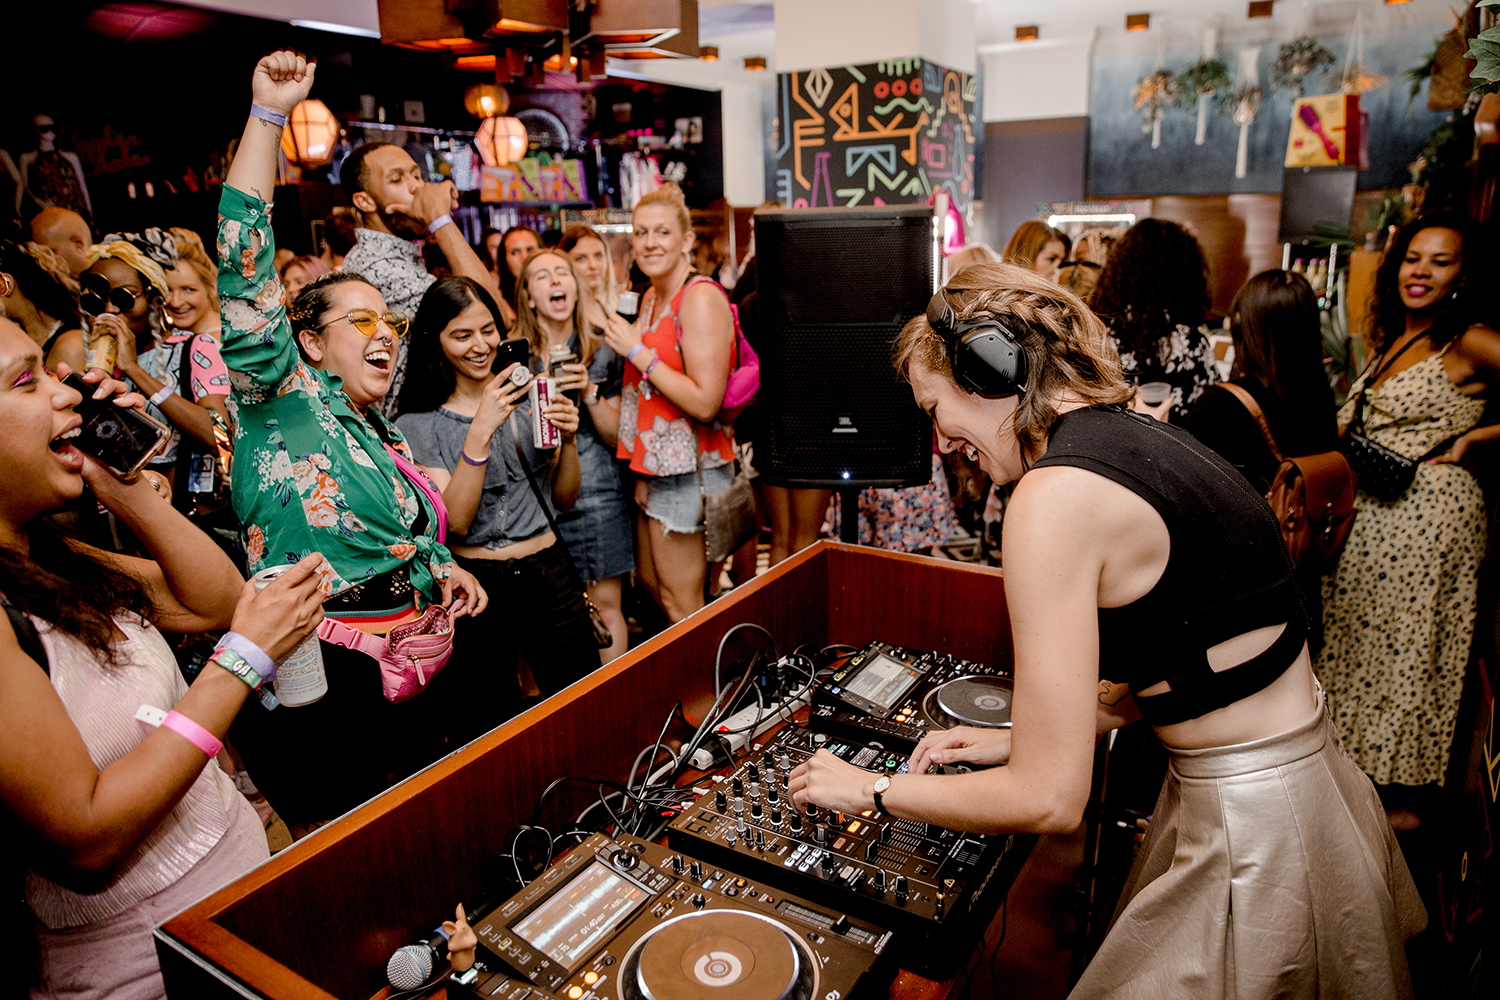 The event included specialty drinks and live DJs, and more.